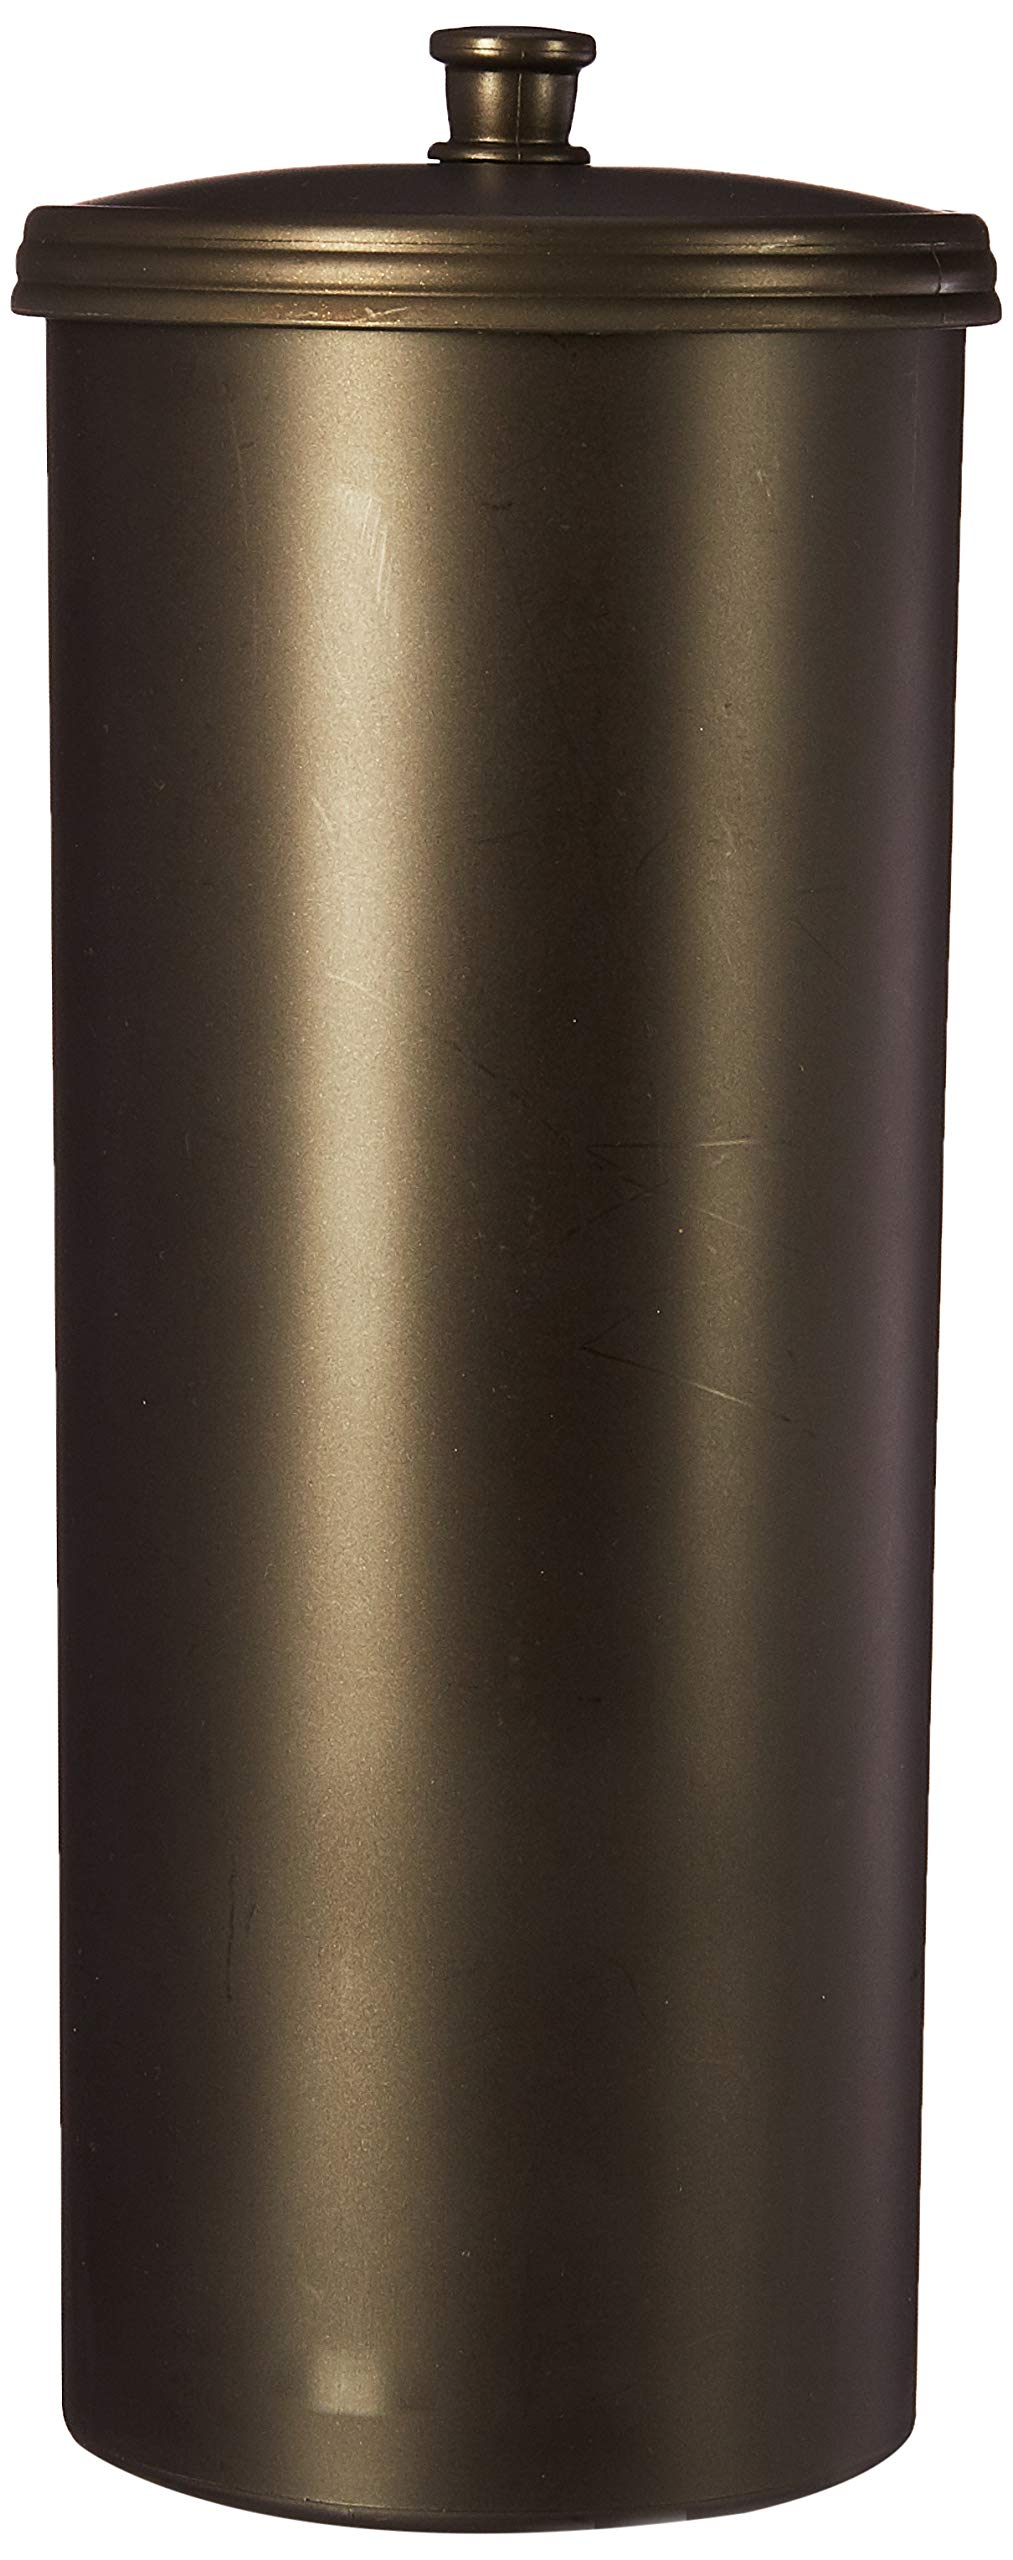 iDesign Kent Plastic Toilet Tissue Roll Reserve Organizer for Bathroom, Vertical Free Standing Compact Organizer, Holds 3 Rolls of Toilet Paper, Bronze by iDesign